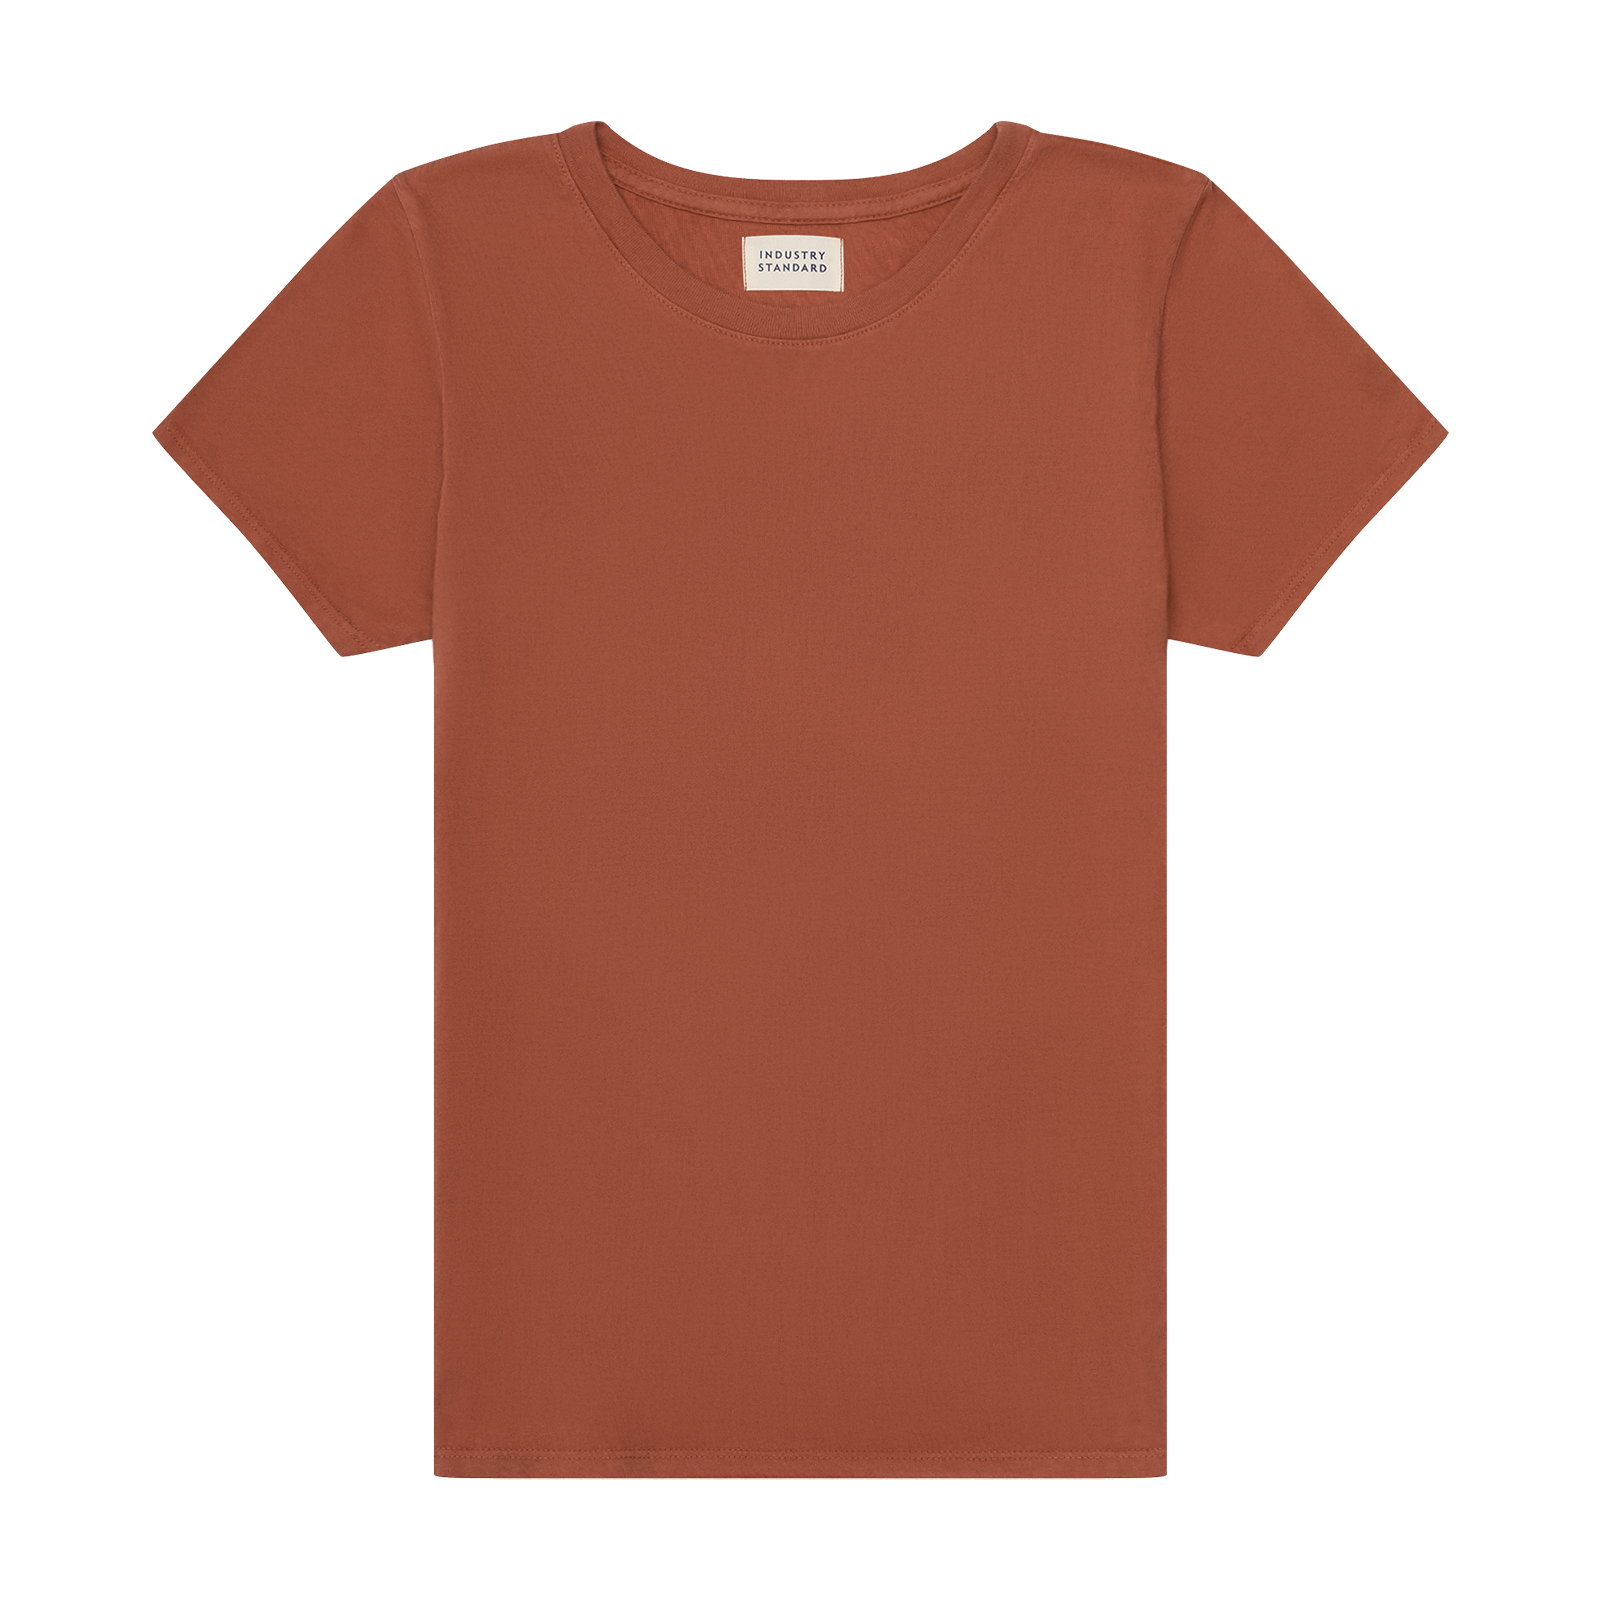 Flat lay t-shirt product image